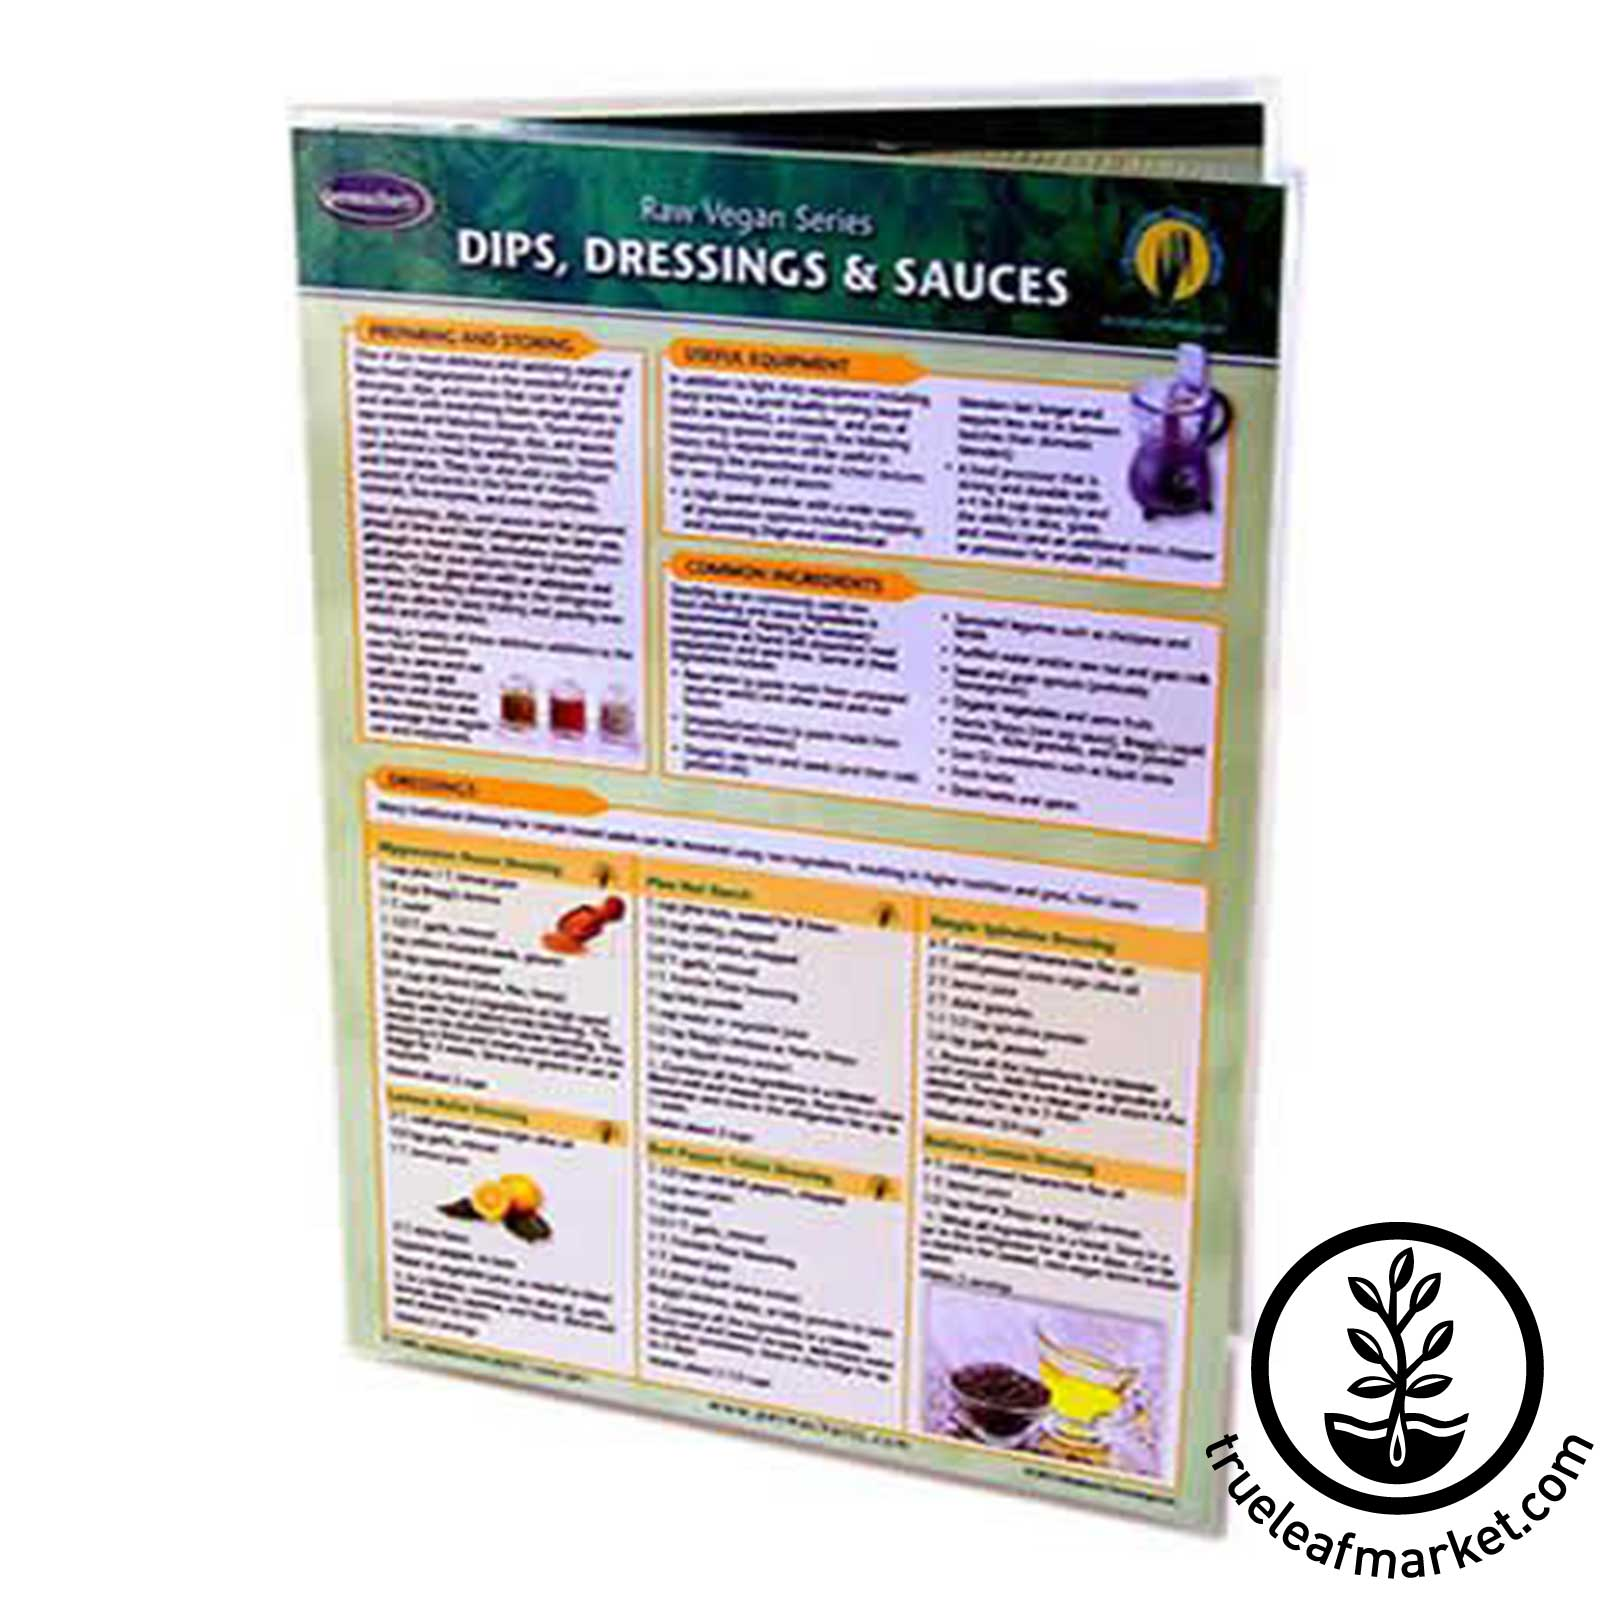 Permacharts - Raw Food Reference - Dips Dressings & Sauces dips, vegan sauces, vegan dressing